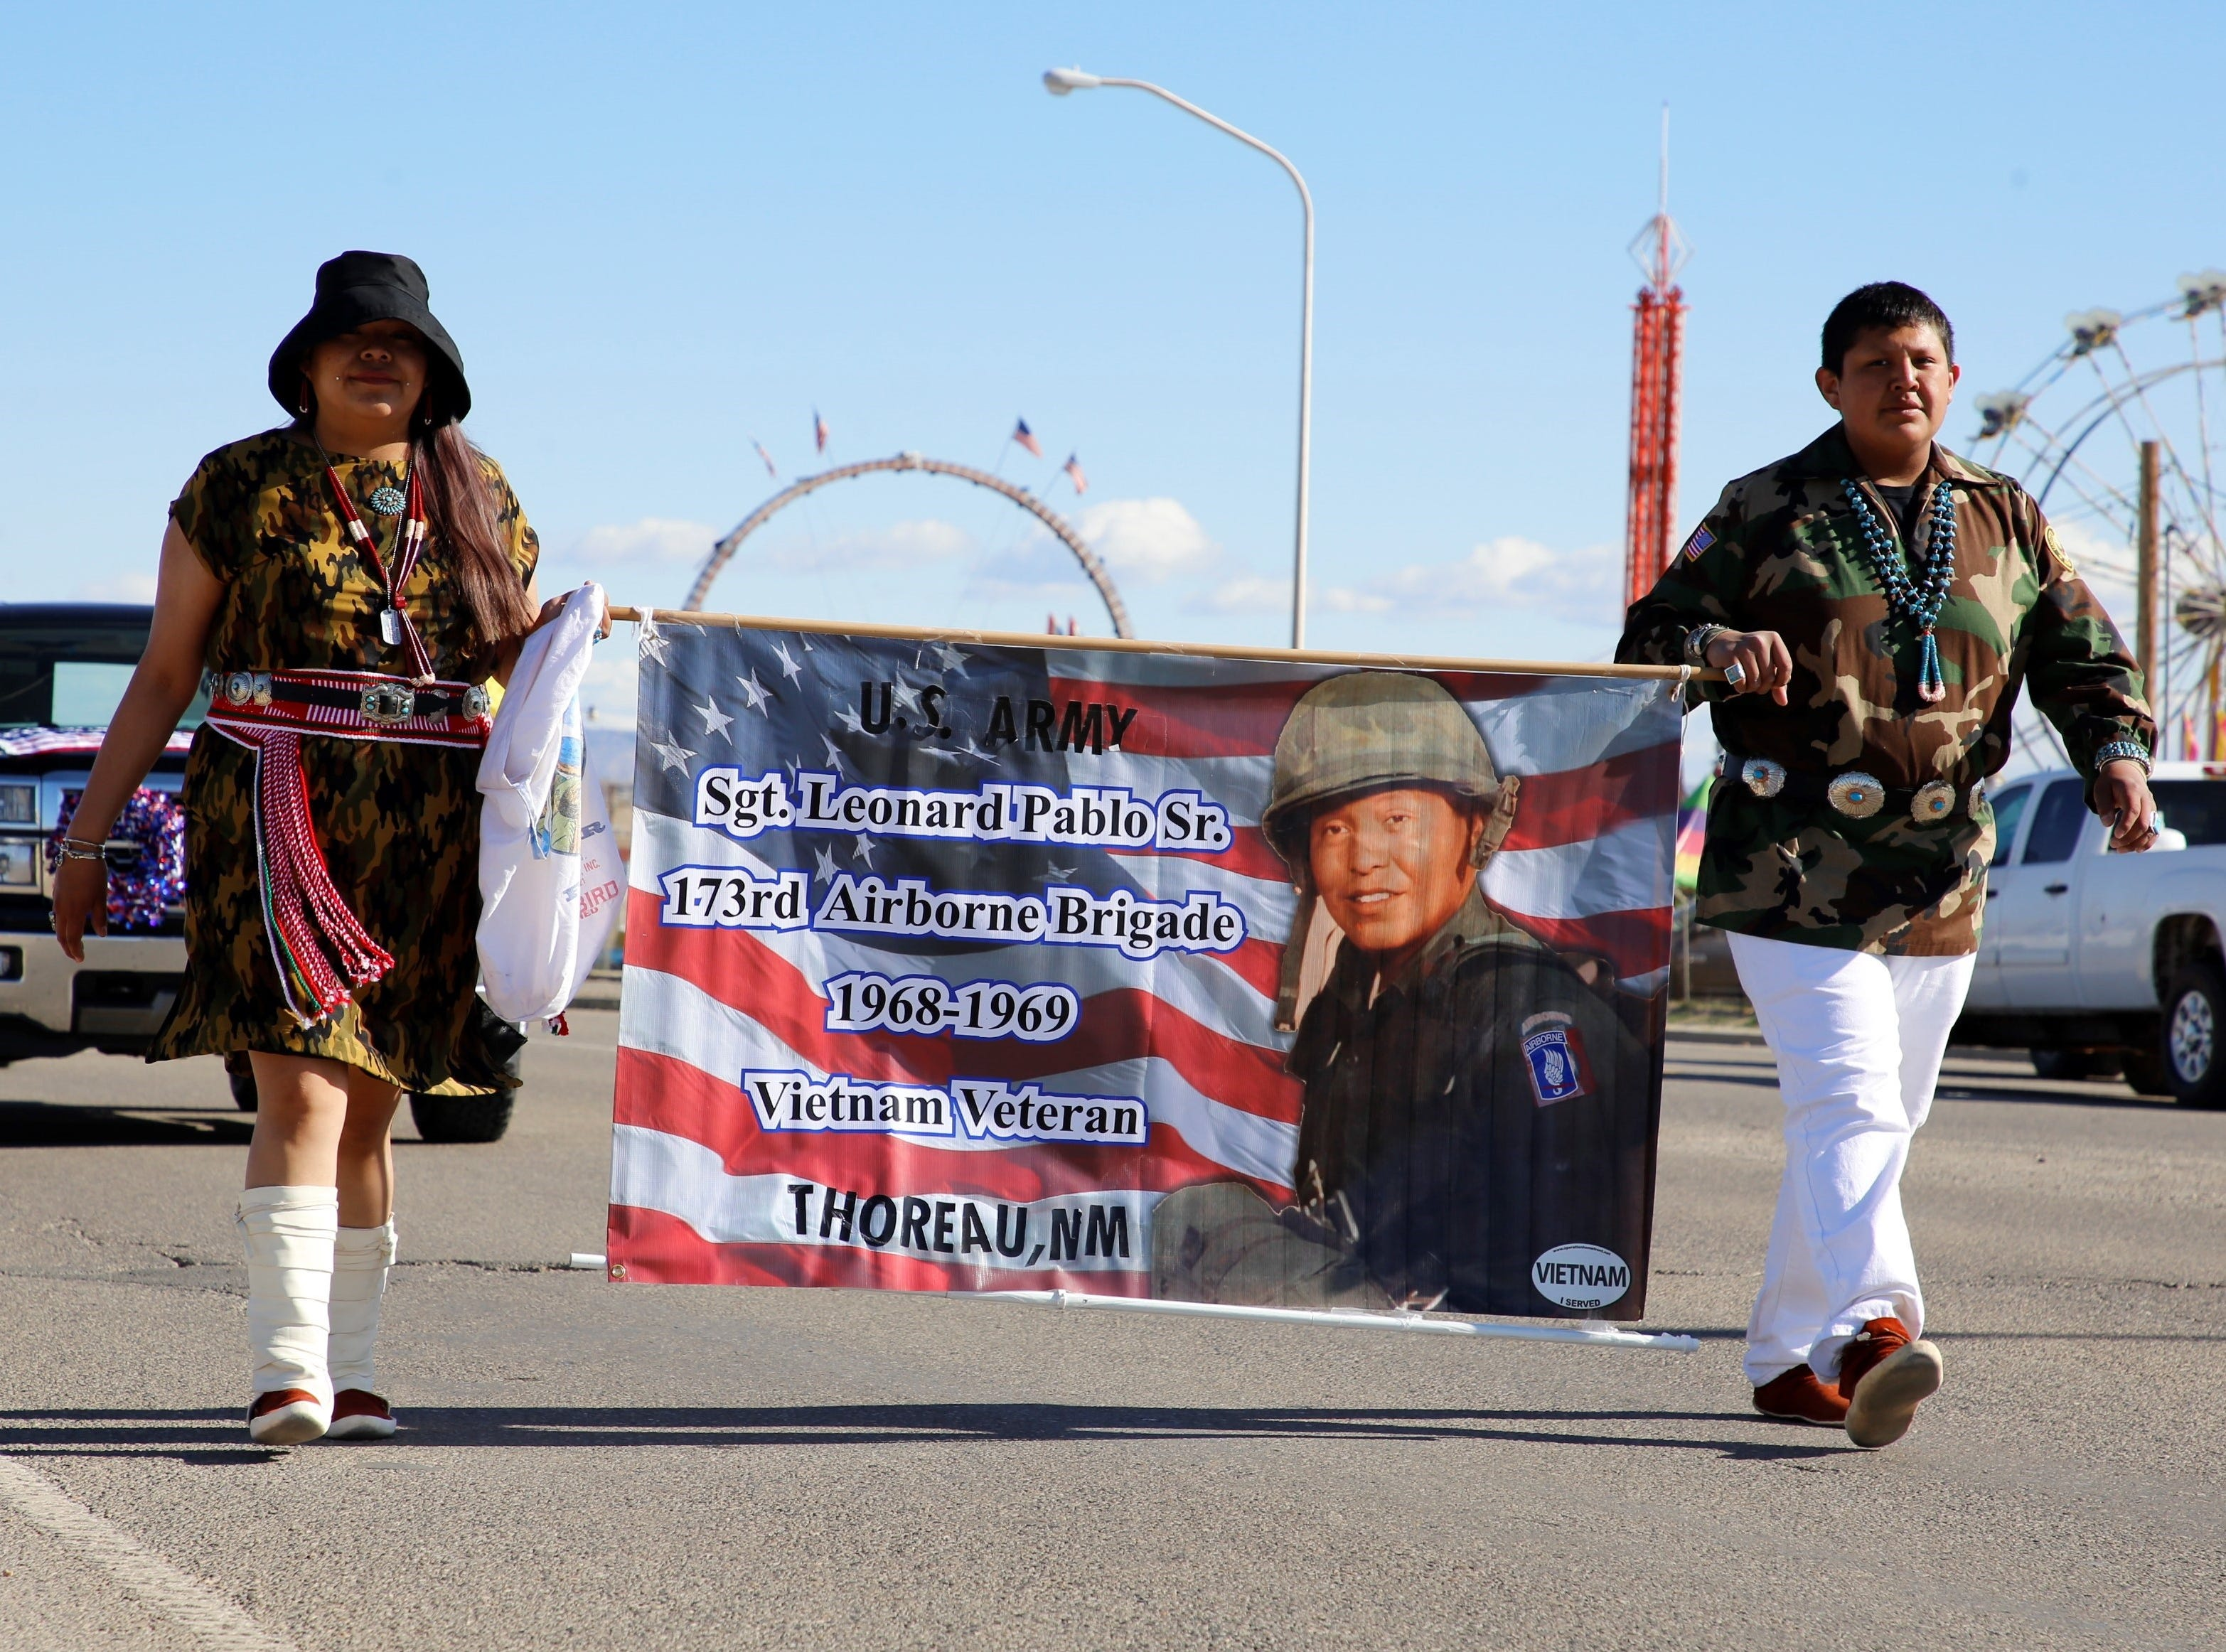 From left, Thoreau residents Lynette Pablo and Elijah Pablo carry a banner on Friday that honors Army Sgt. Leonard Pablo Sr., who served in the Vietnam War.